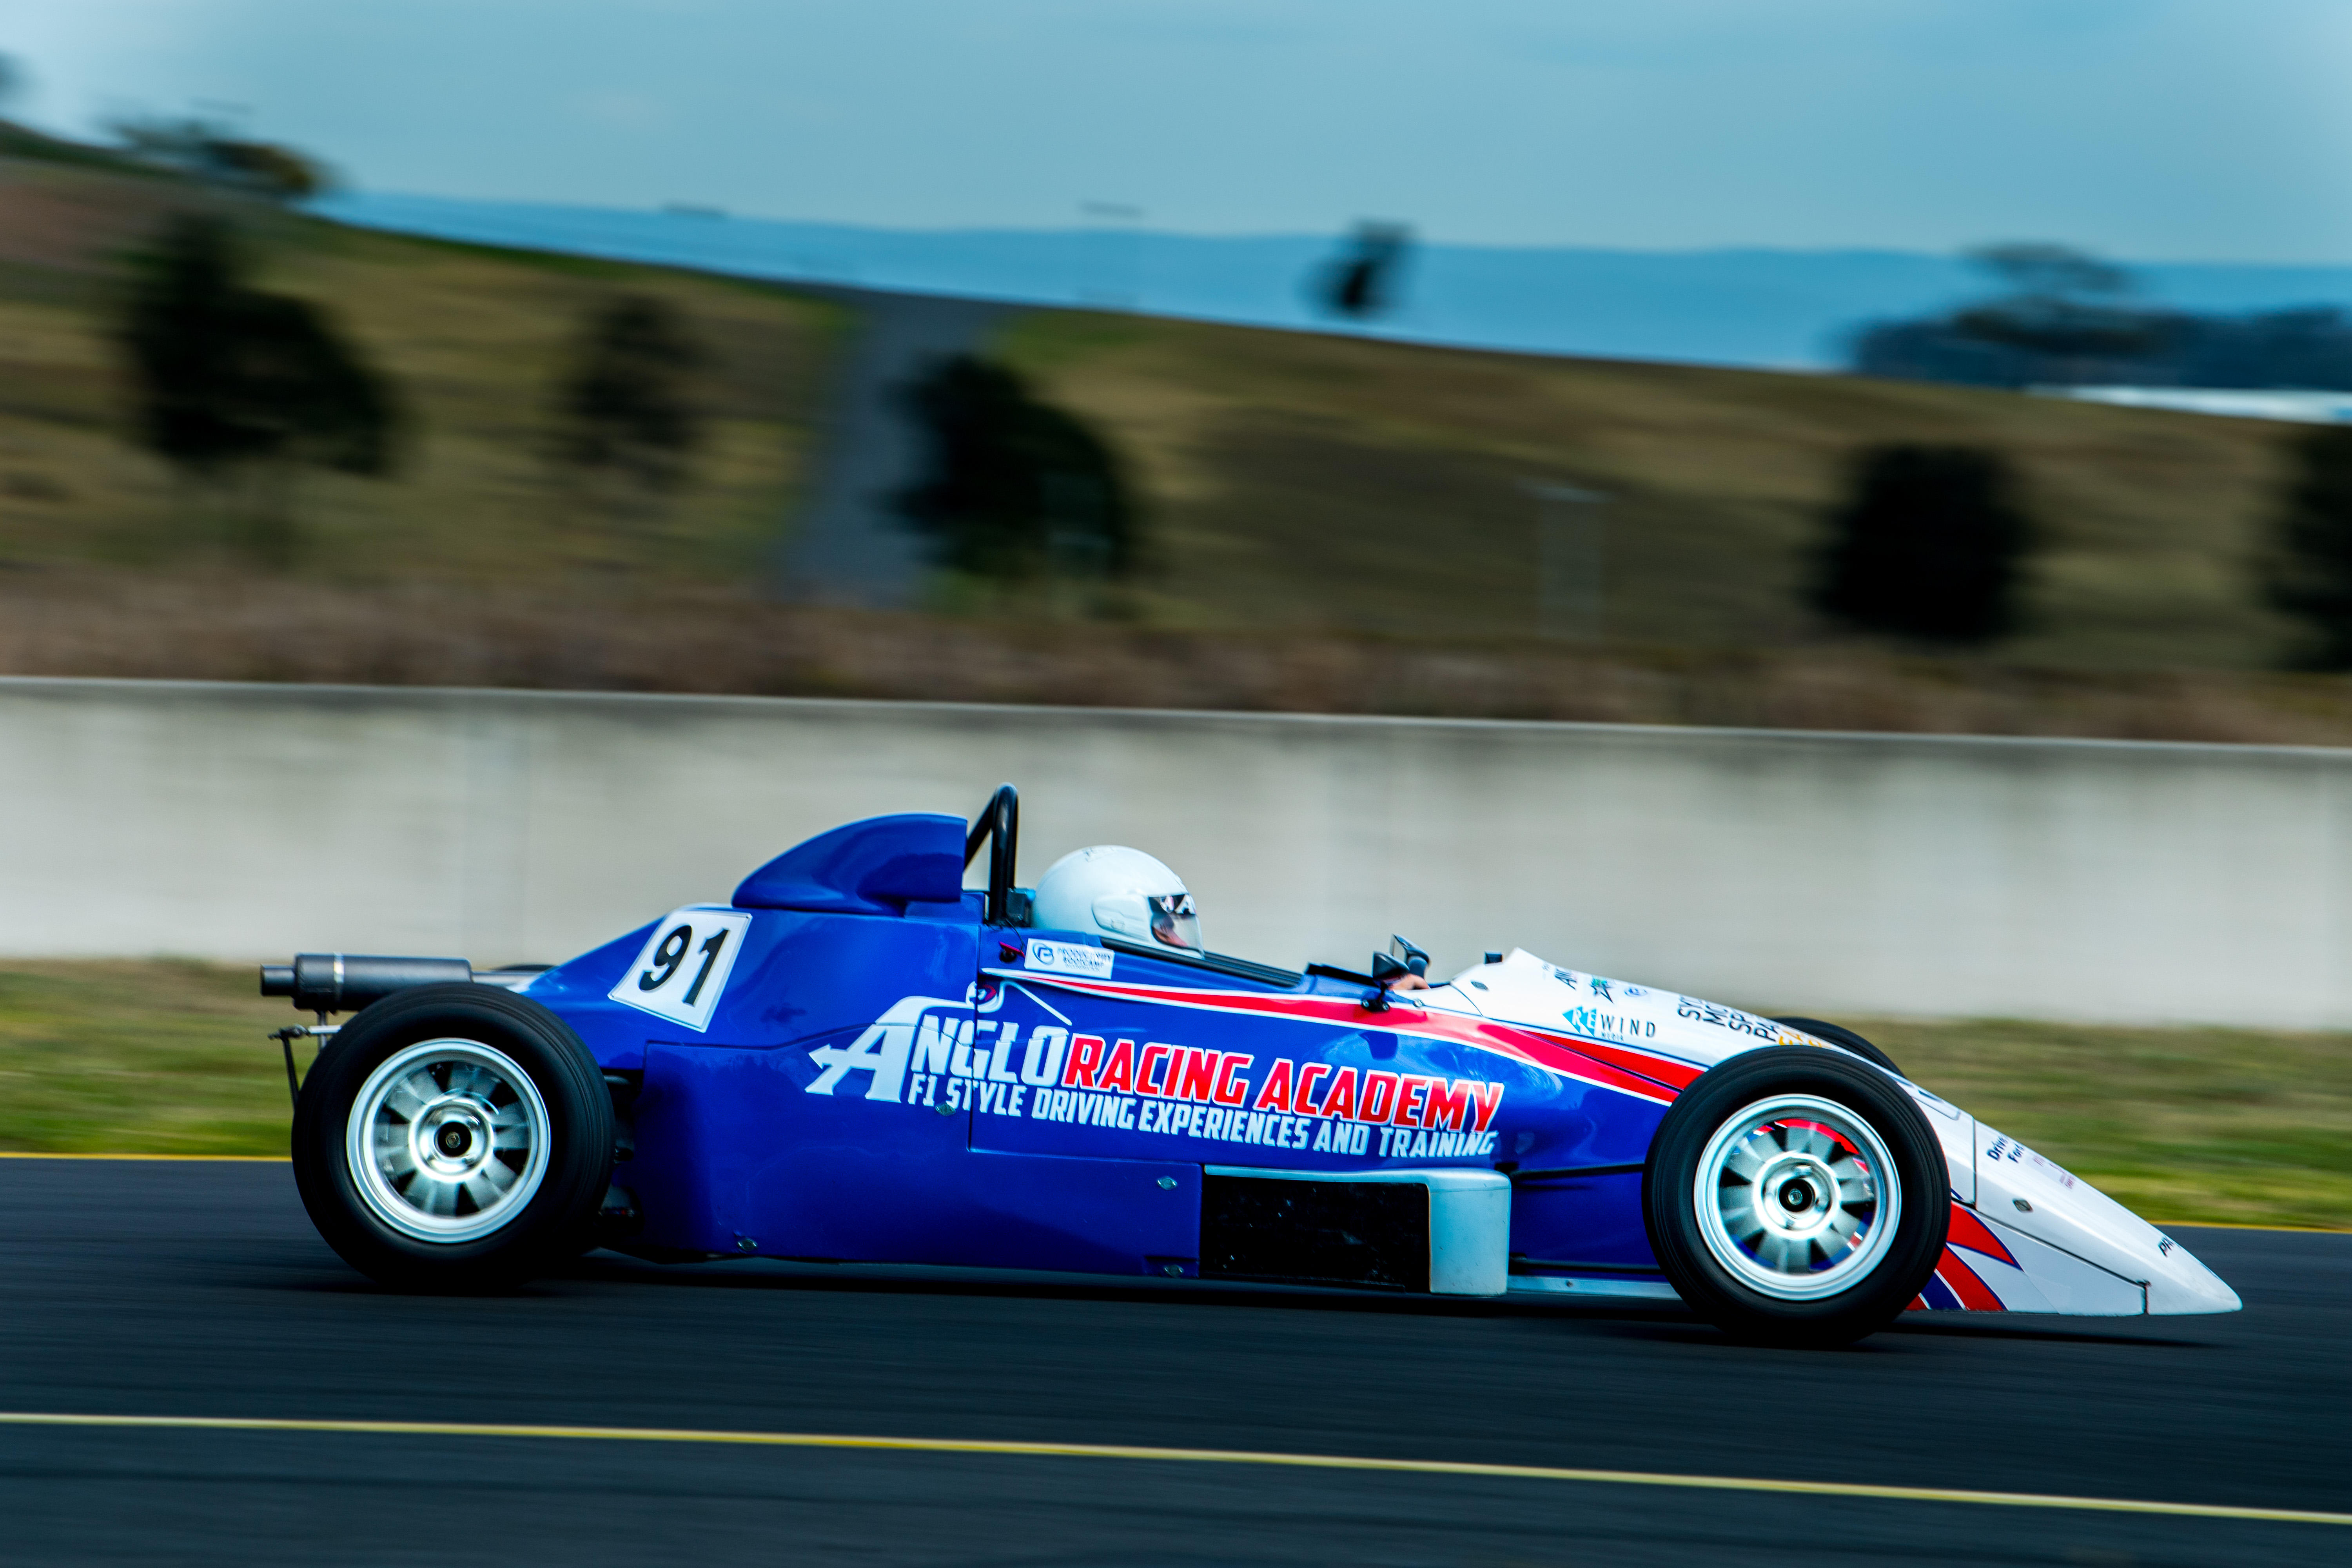 F1-Style Race Team Experience, 10 Laps - WEEKDAY SPECIAL SAVE $60! Sydney Motorsport Park, Eastern Creek